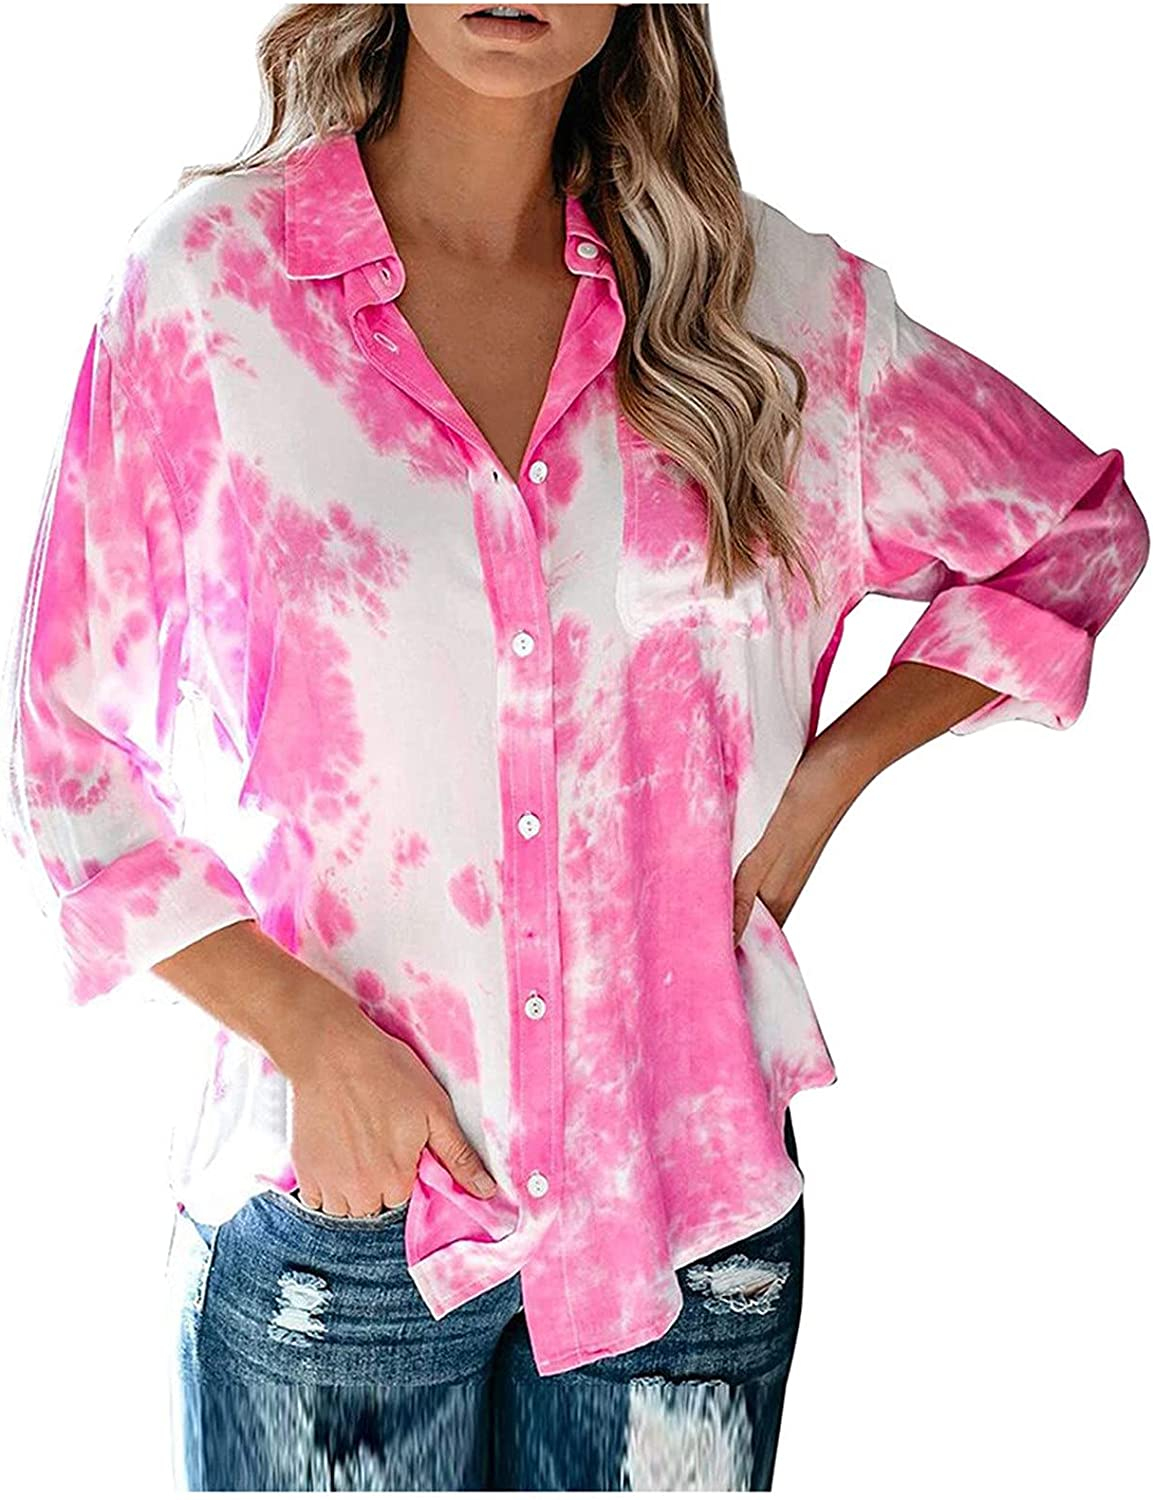 Womens Tops Trendy Tie Dye Print Blouse Turn Down Collar Shirts Long Sleeve T Shirt Button Down Pullover with Pockets